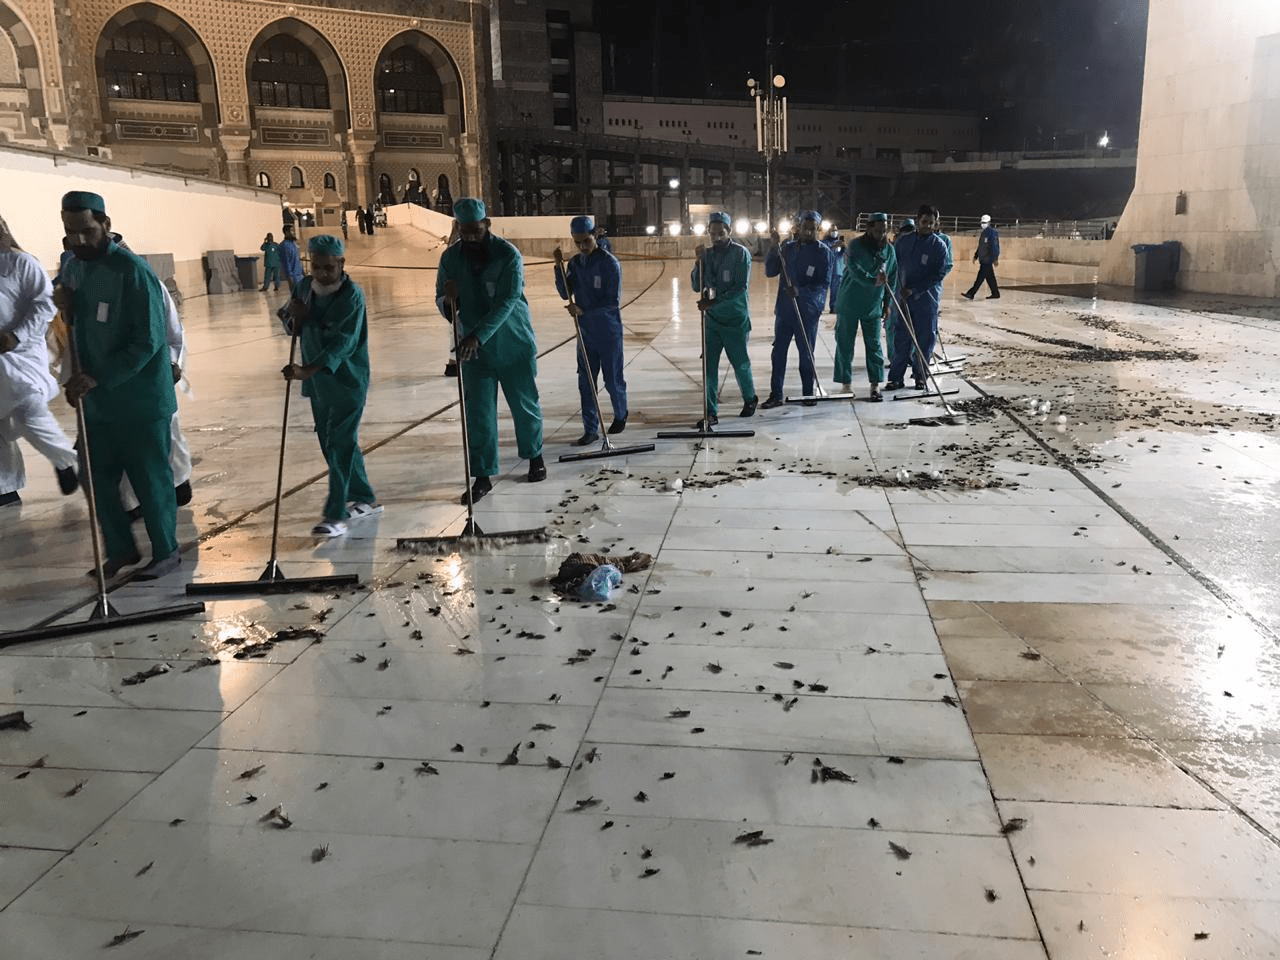 Mecca's Grand Mosque plagued by swarm of locusts